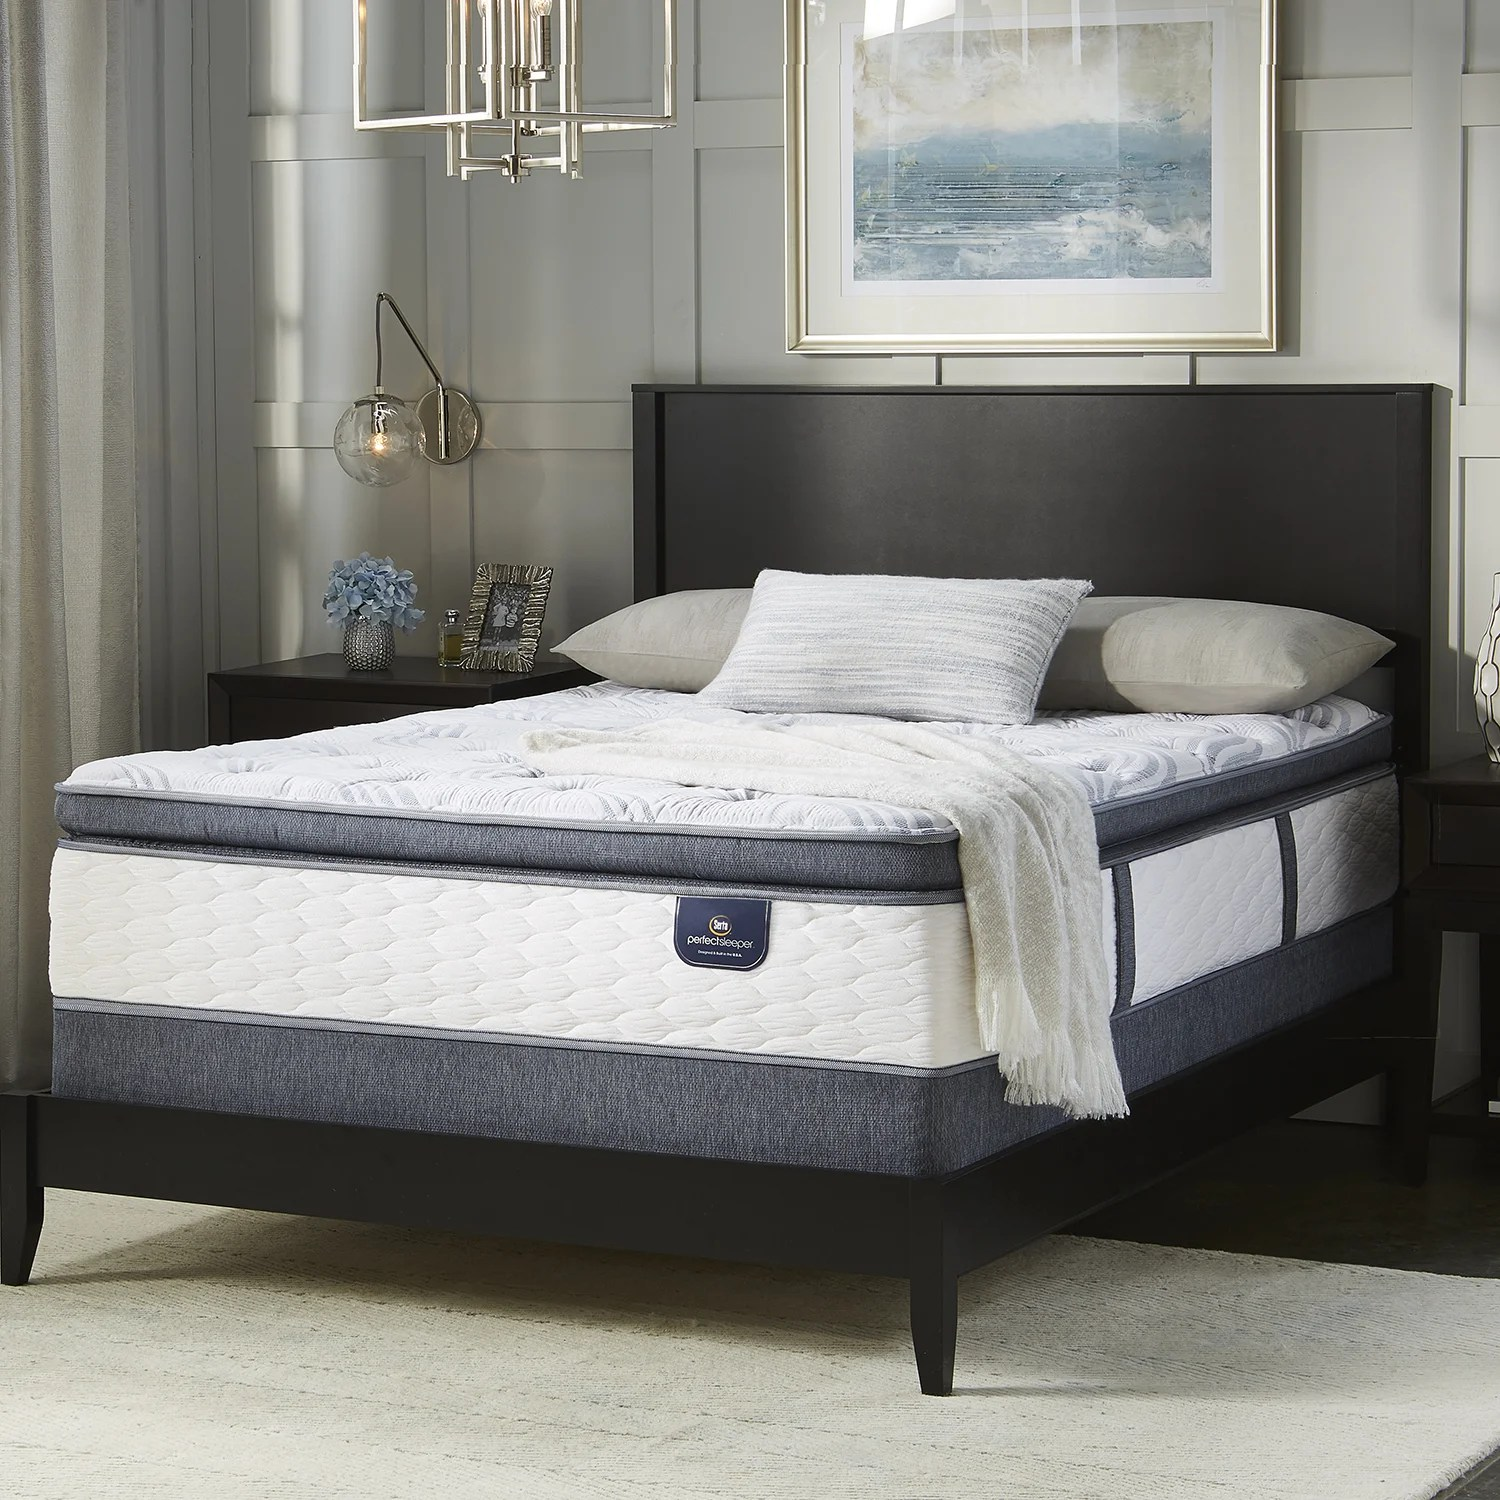 Bedroom Mattress Buy Queen Size Mattresses Online At Overstock Our Best Bedroom